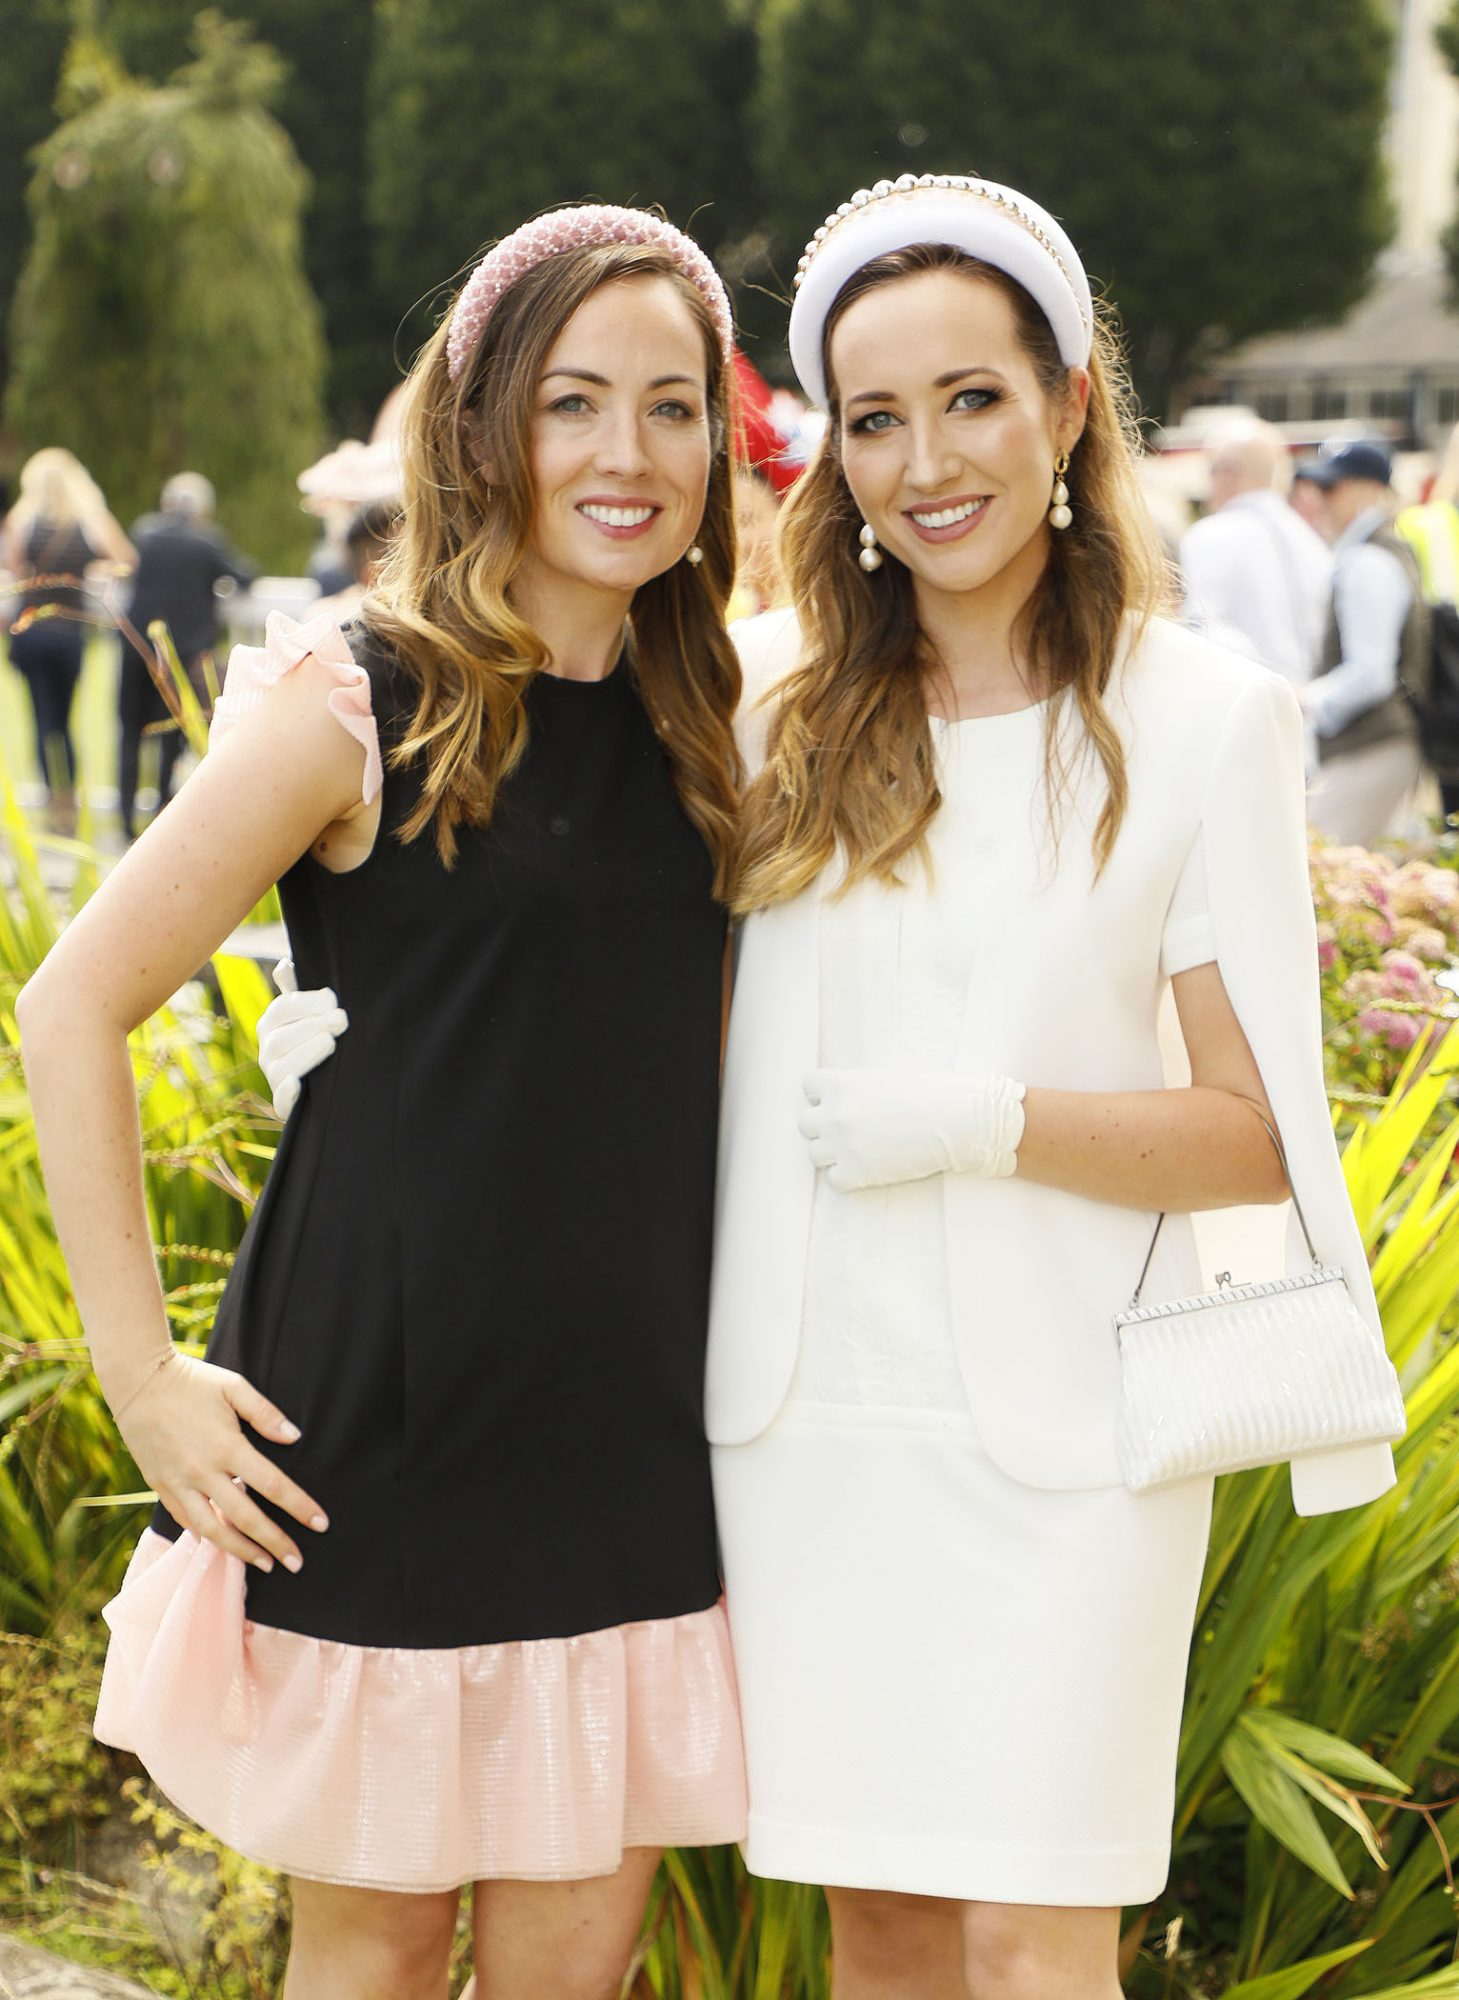 Anne Marie Scully and Noelle Sorohan at the Dundrum Town Centre Ladies' Day at the Dublin Horse Show in the RDS. Photo: Kieran Harnett